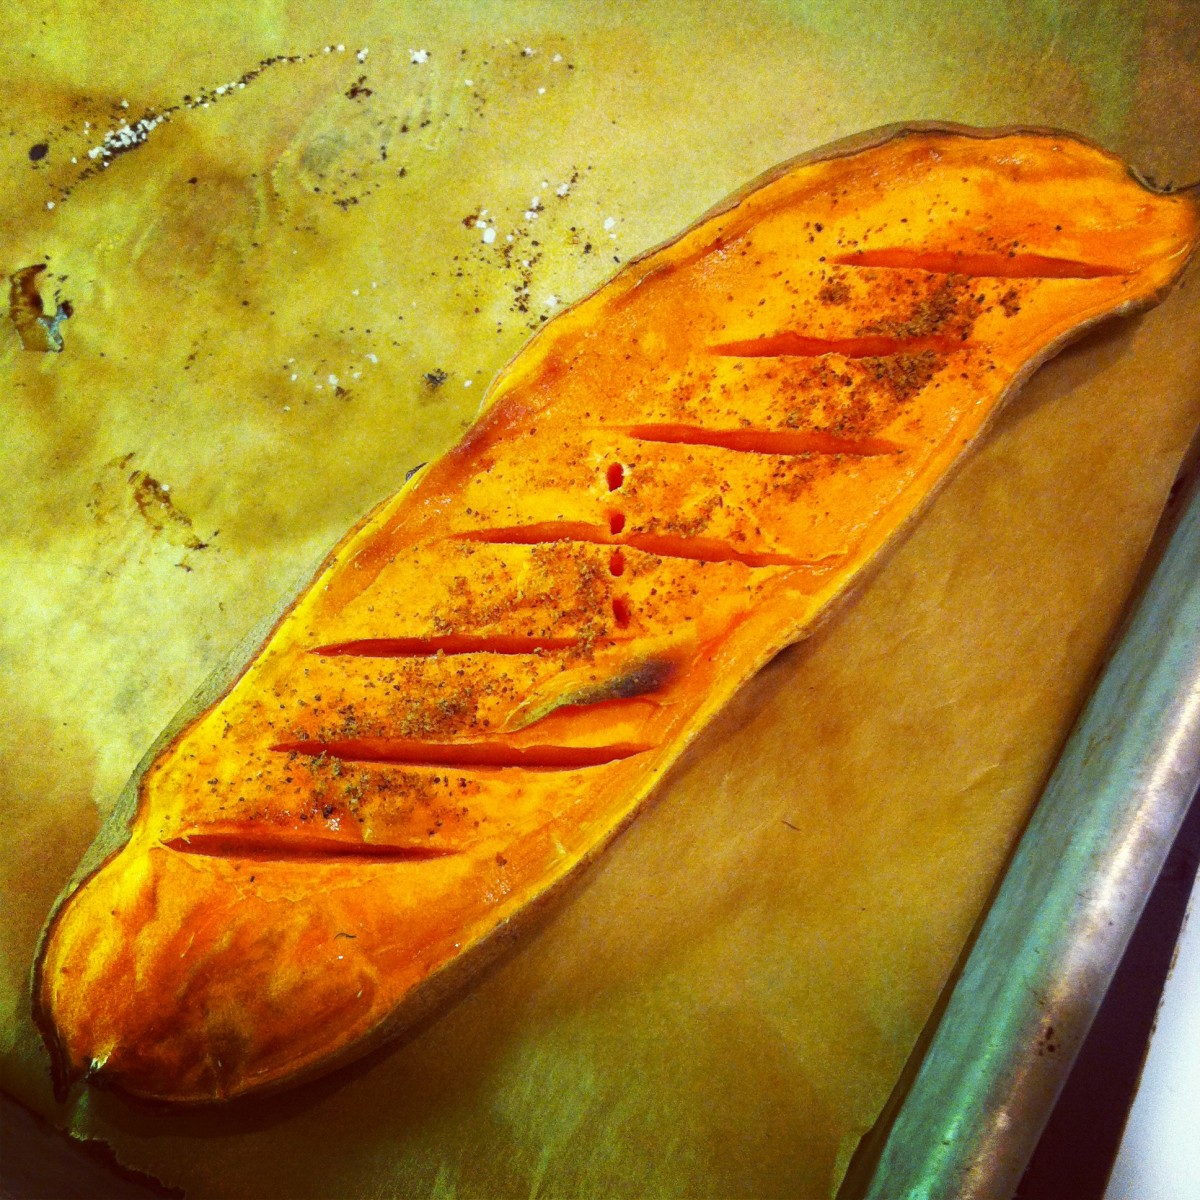 A roasted sweet potato. You can tell it's a sweet potato because of the orange interior flesh. This is one of two types of sweet potatoes sold in US markets.